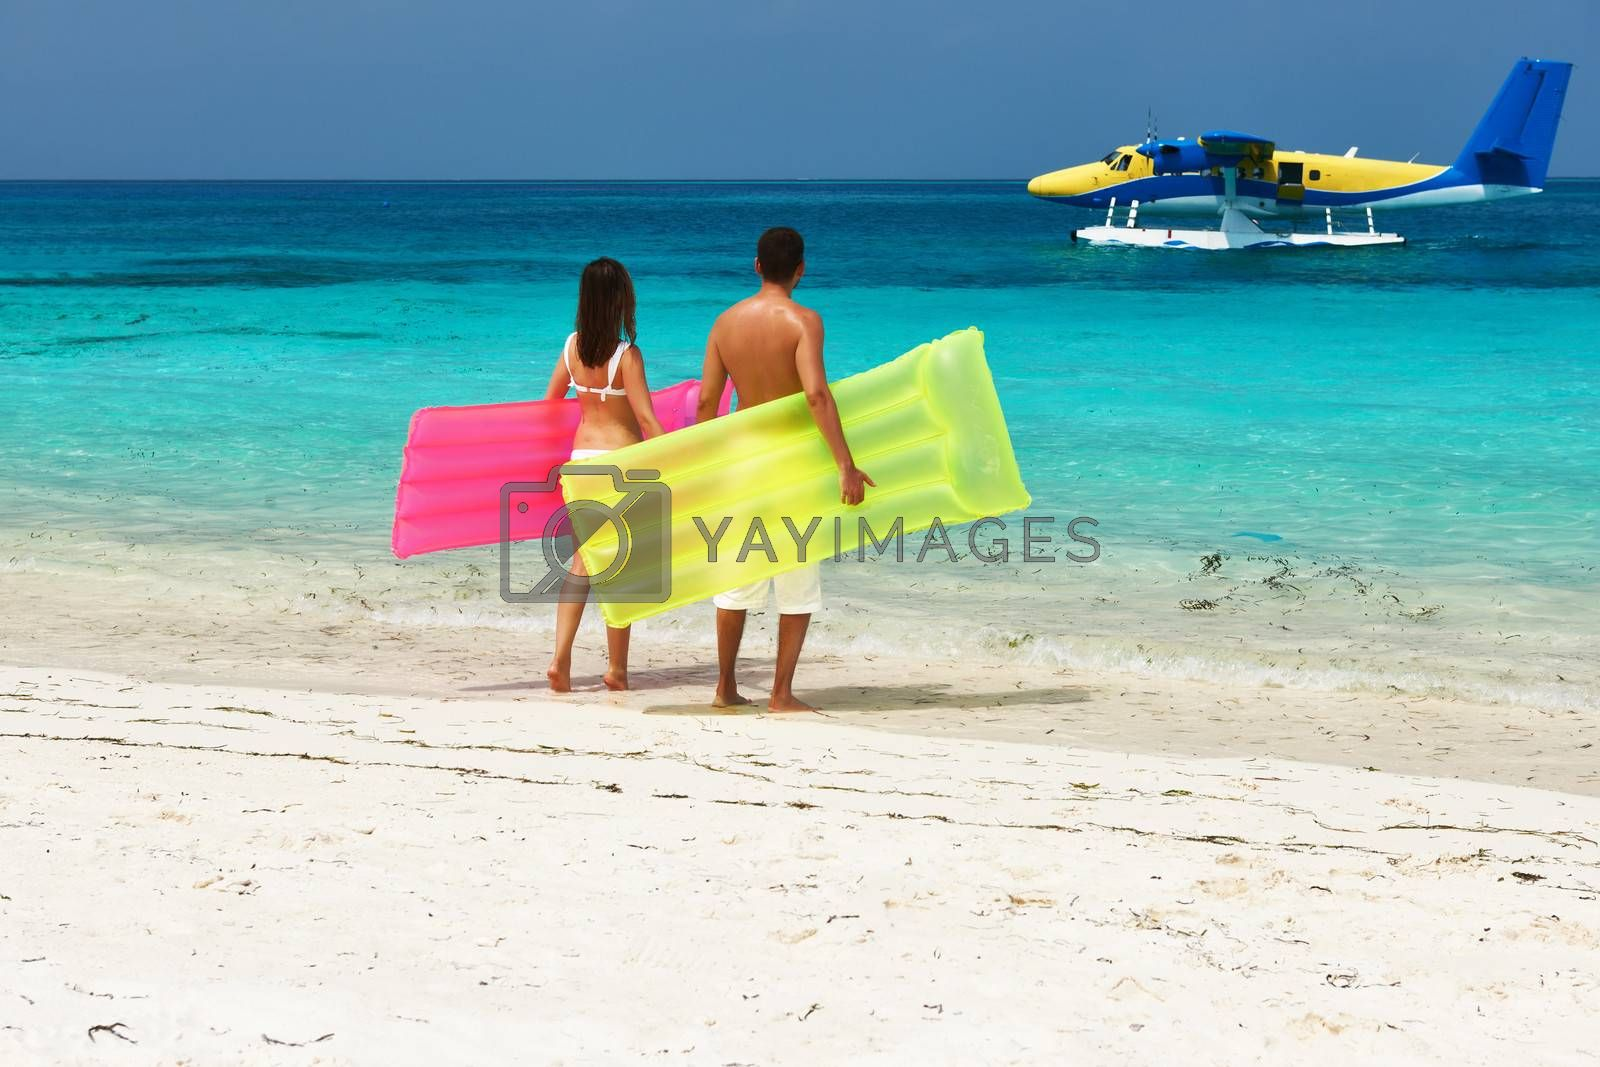 Couple with inflatable rafts looking at arrived seaplane on a tropical beach at Maldives. No brand names or copyright objects